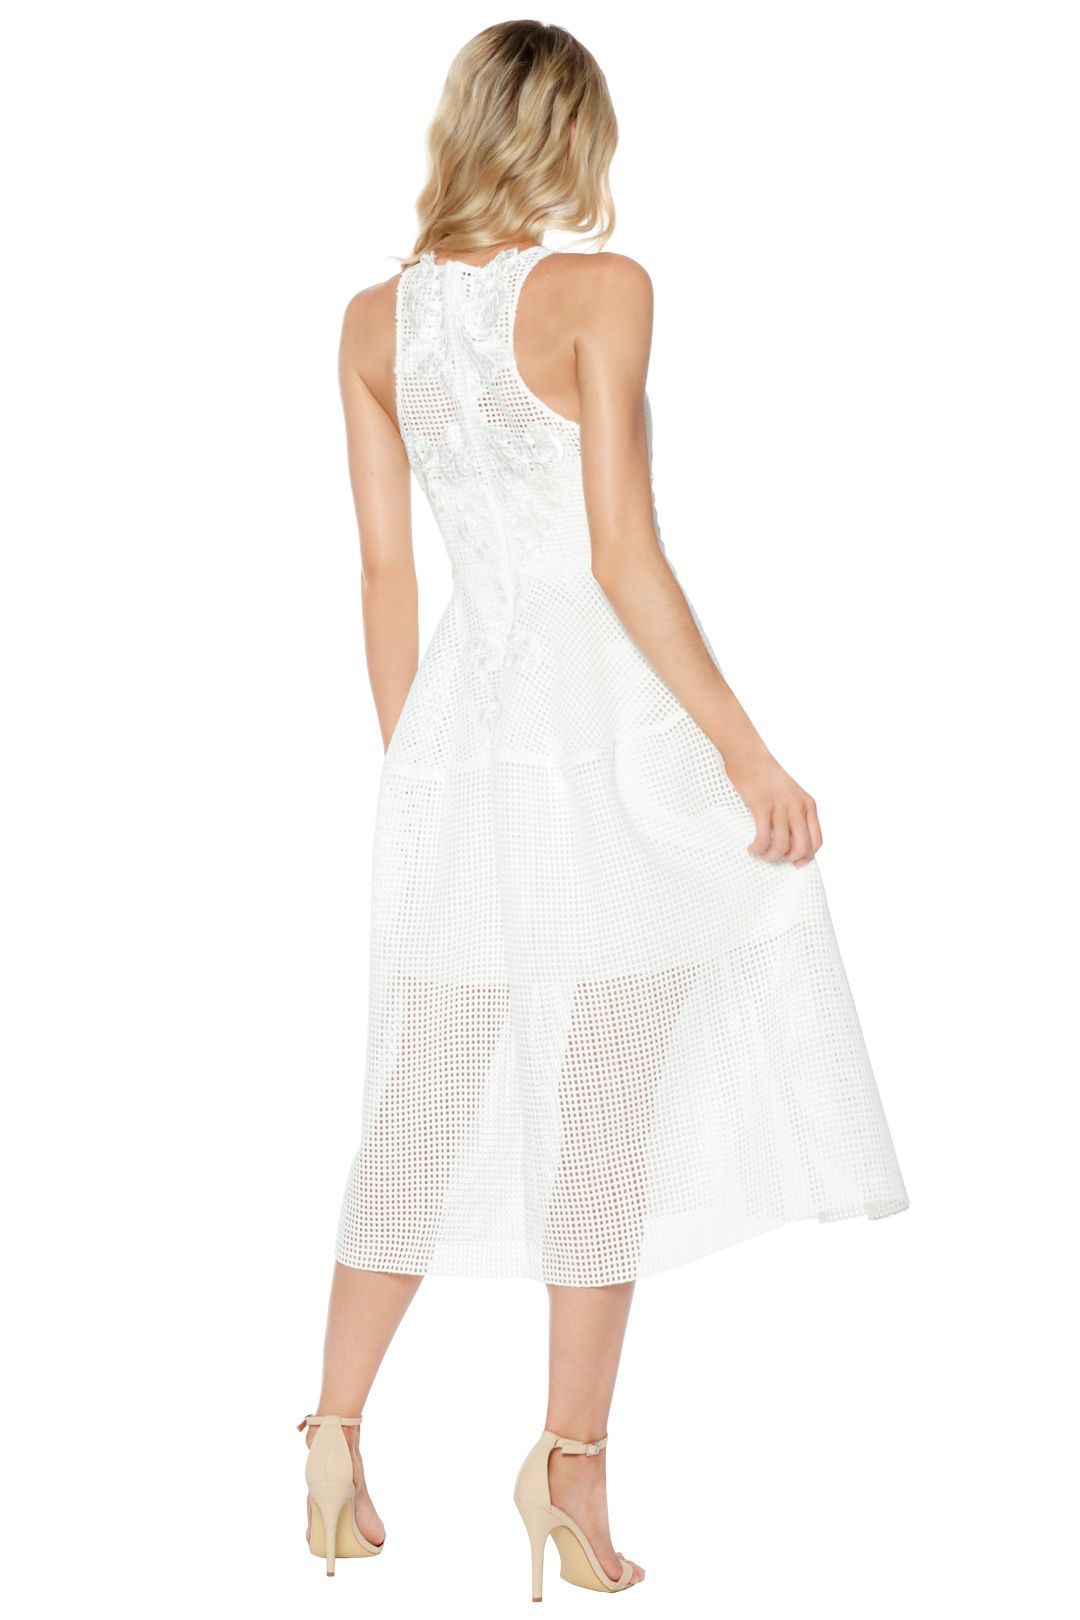 Thurley - Bianca Embroidered Dress - White - Back